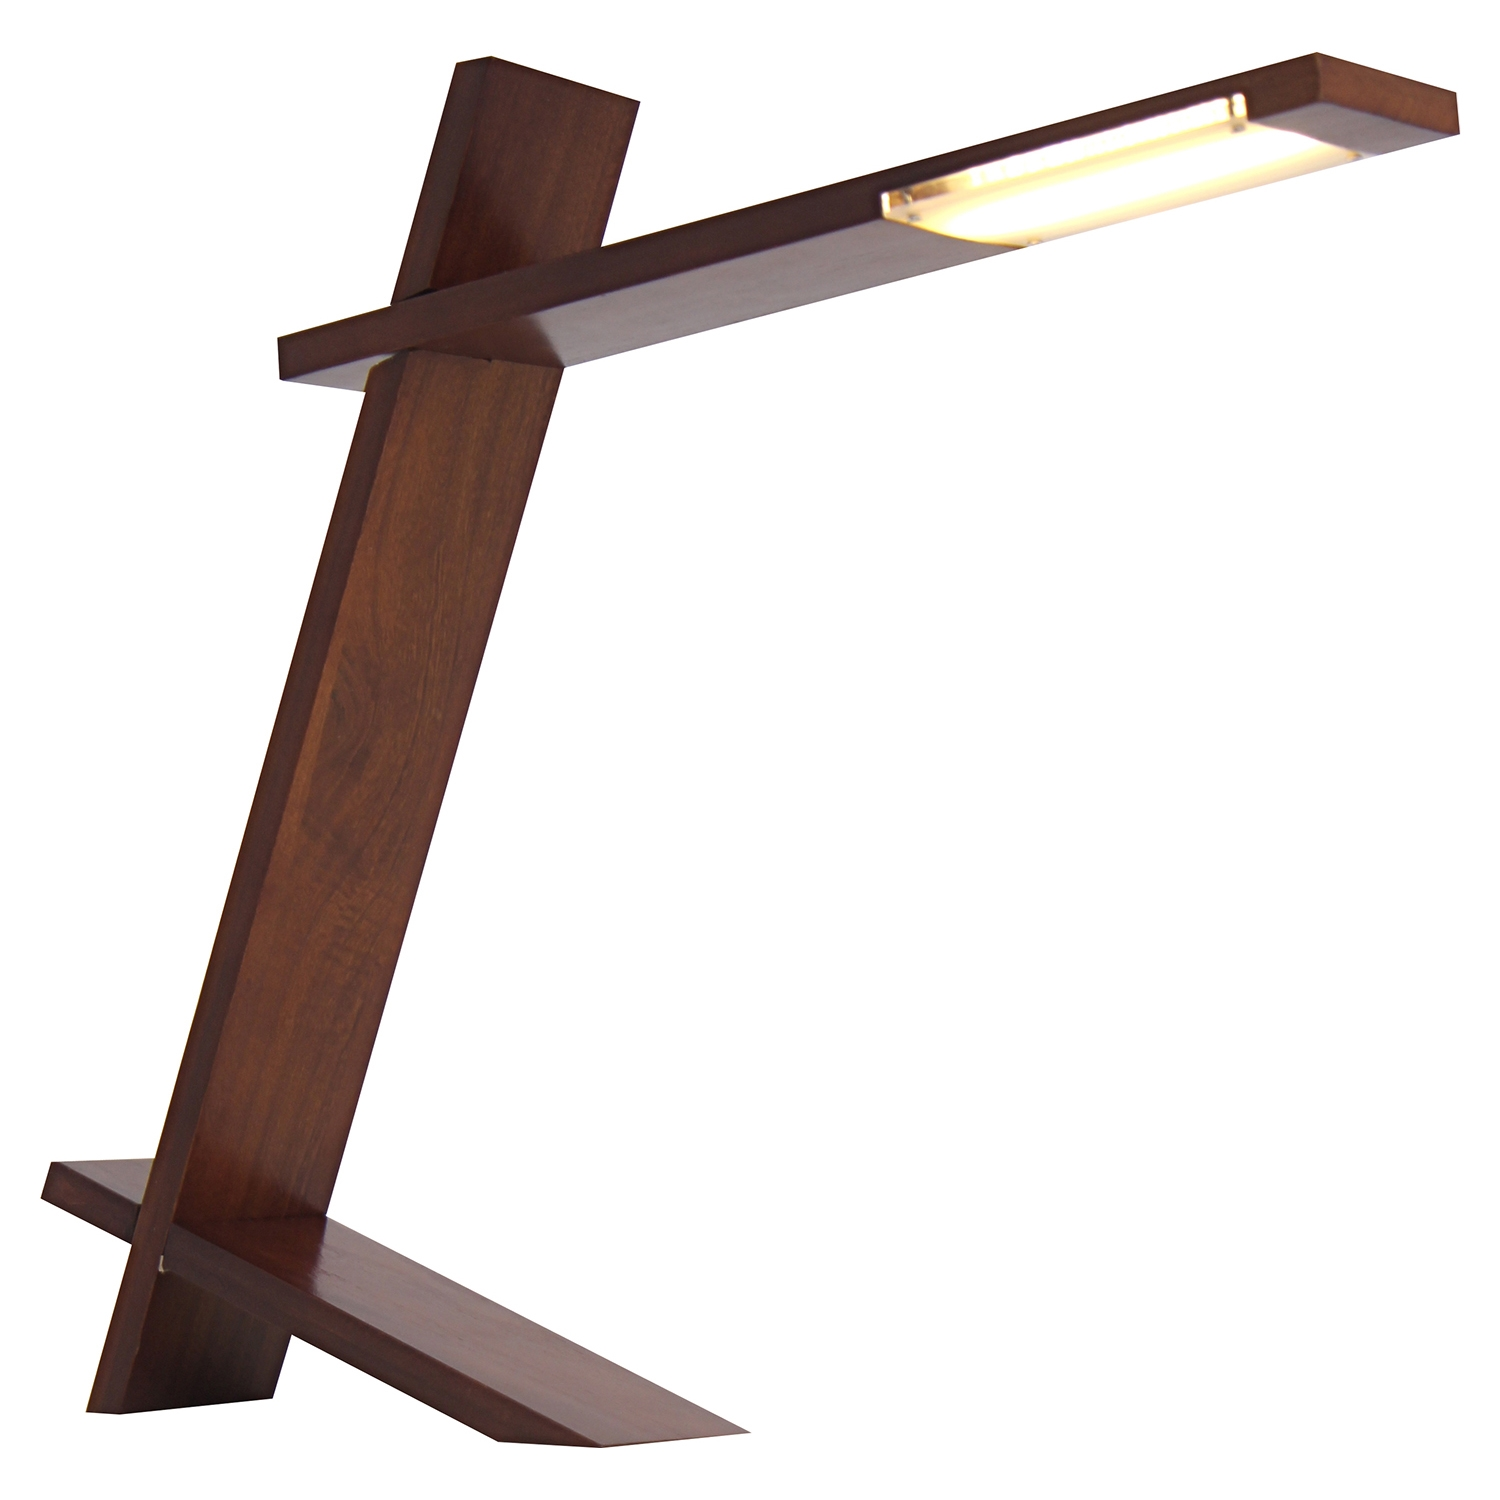 Plank Table Lamp - Walnut